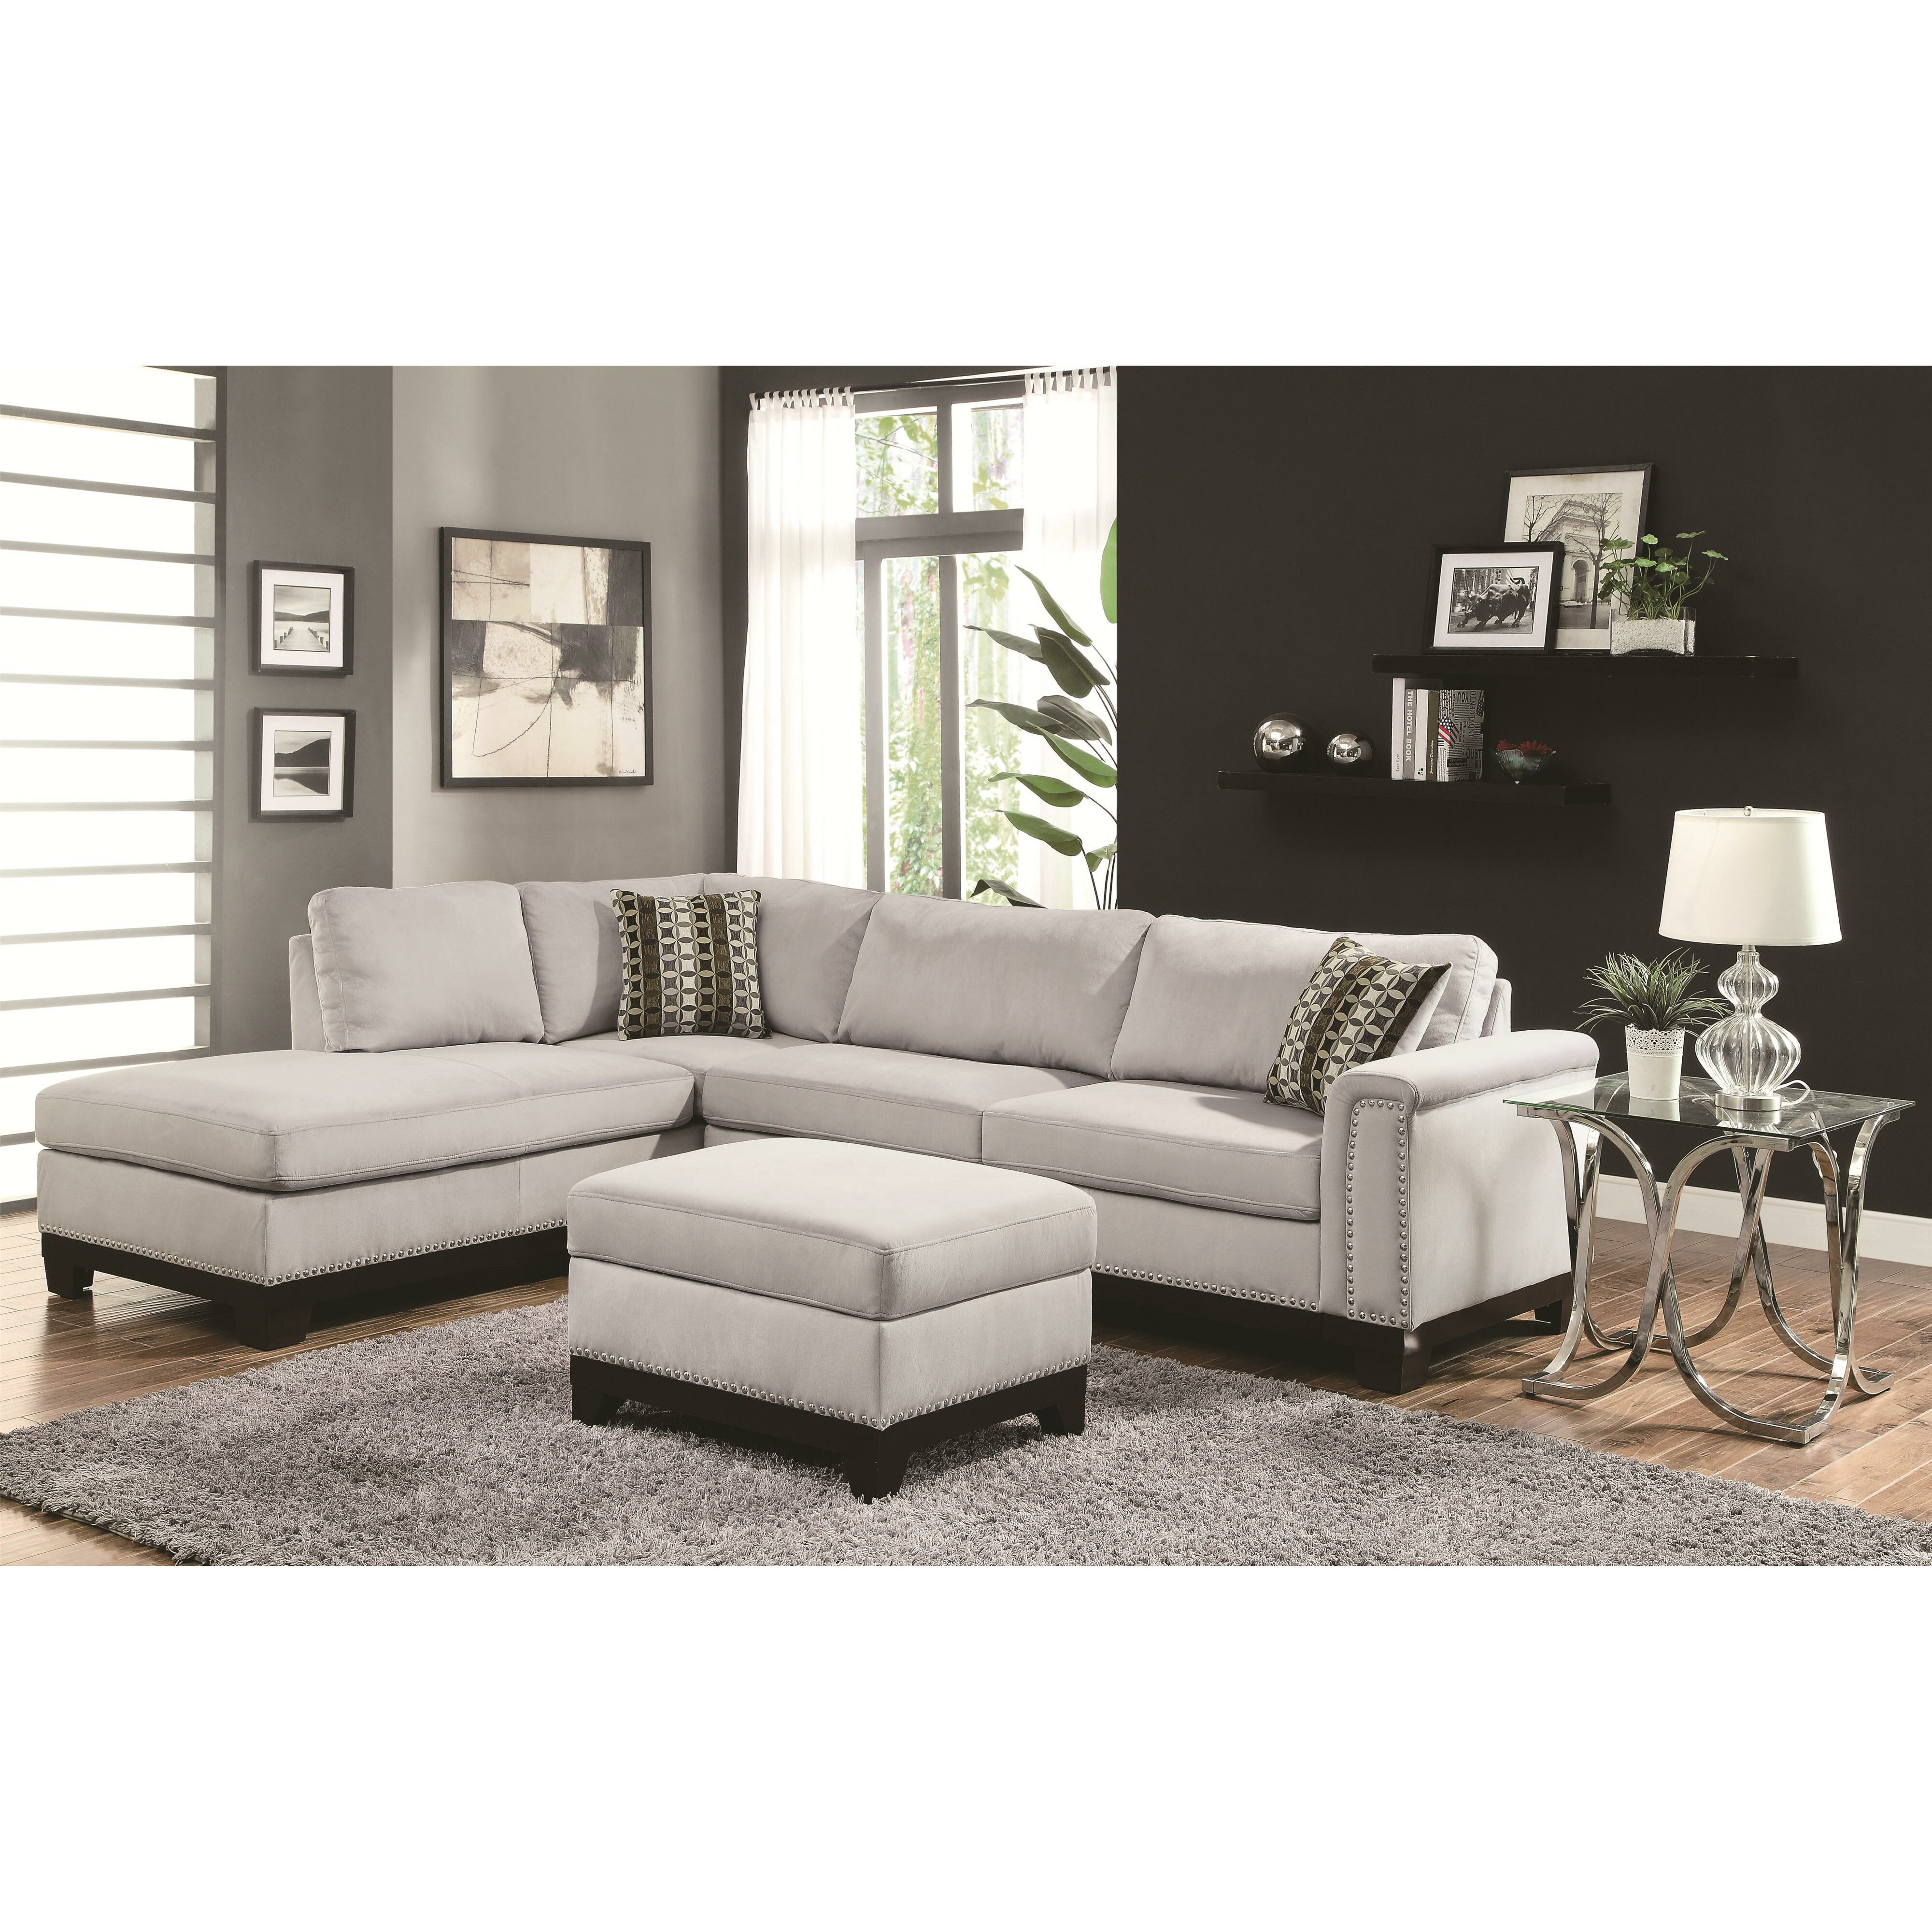 Wildon home r mason reversible chaise sectional reviews for Sectional sofa reversible chaise living room furniture